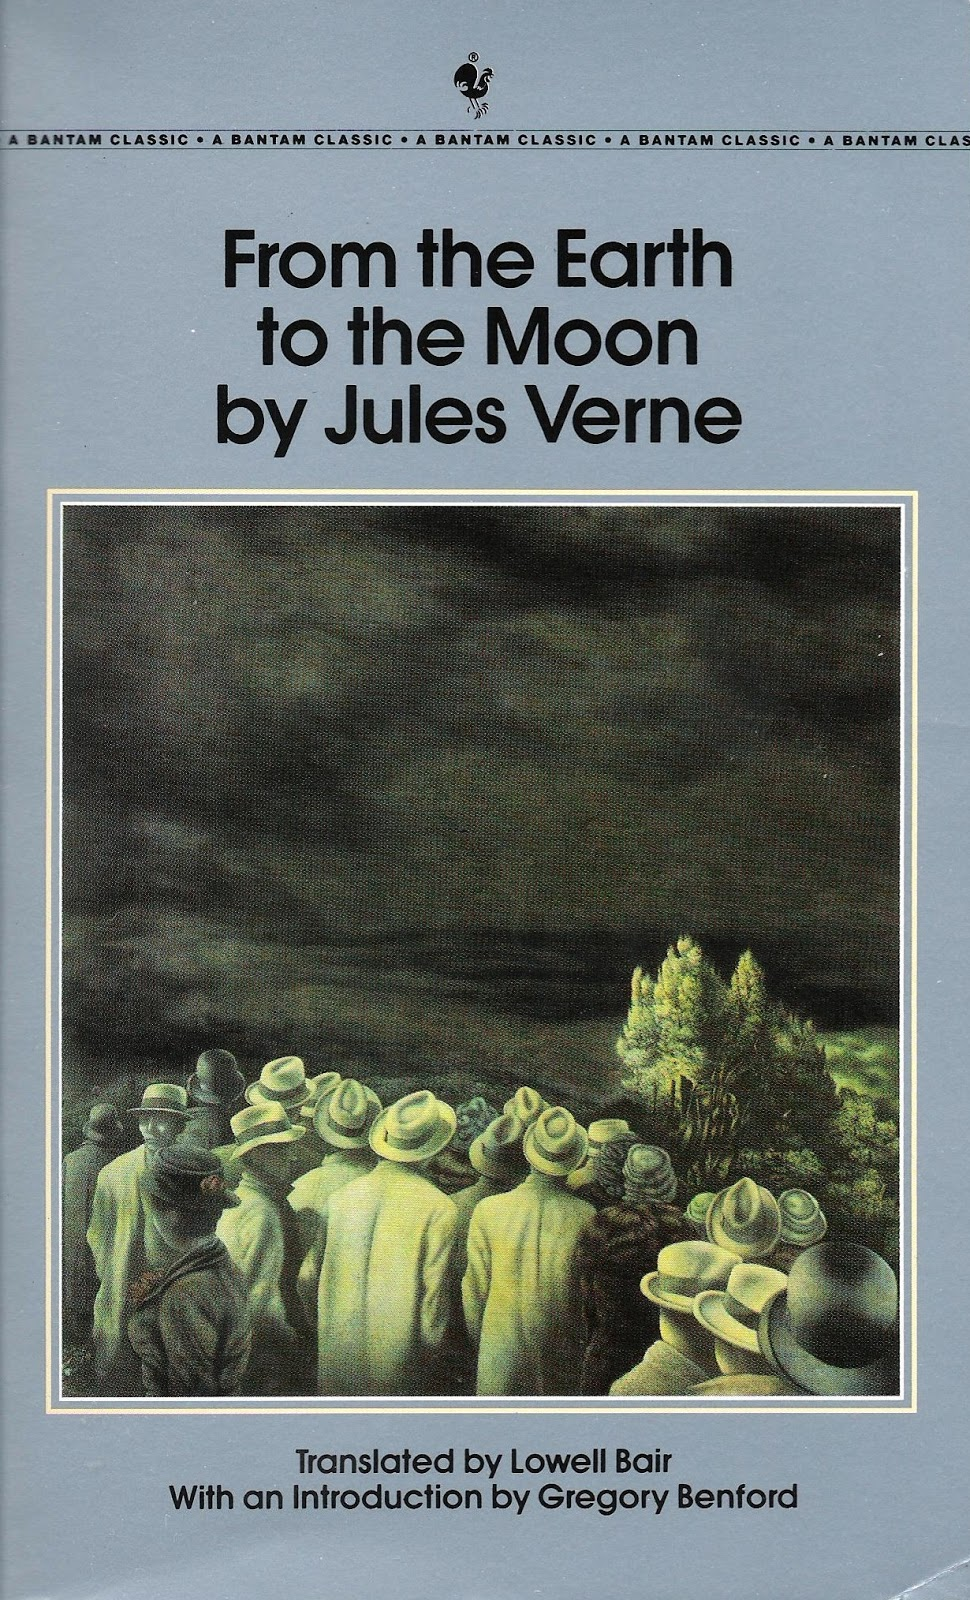 an analysis of from the earth to the moon and around the moon by jules verne Around the moon (french: autour de la lune, 1870), jules verne's sequel to from the earth to the moon, is a science fiction novel which continues the trip to the moon which was only.